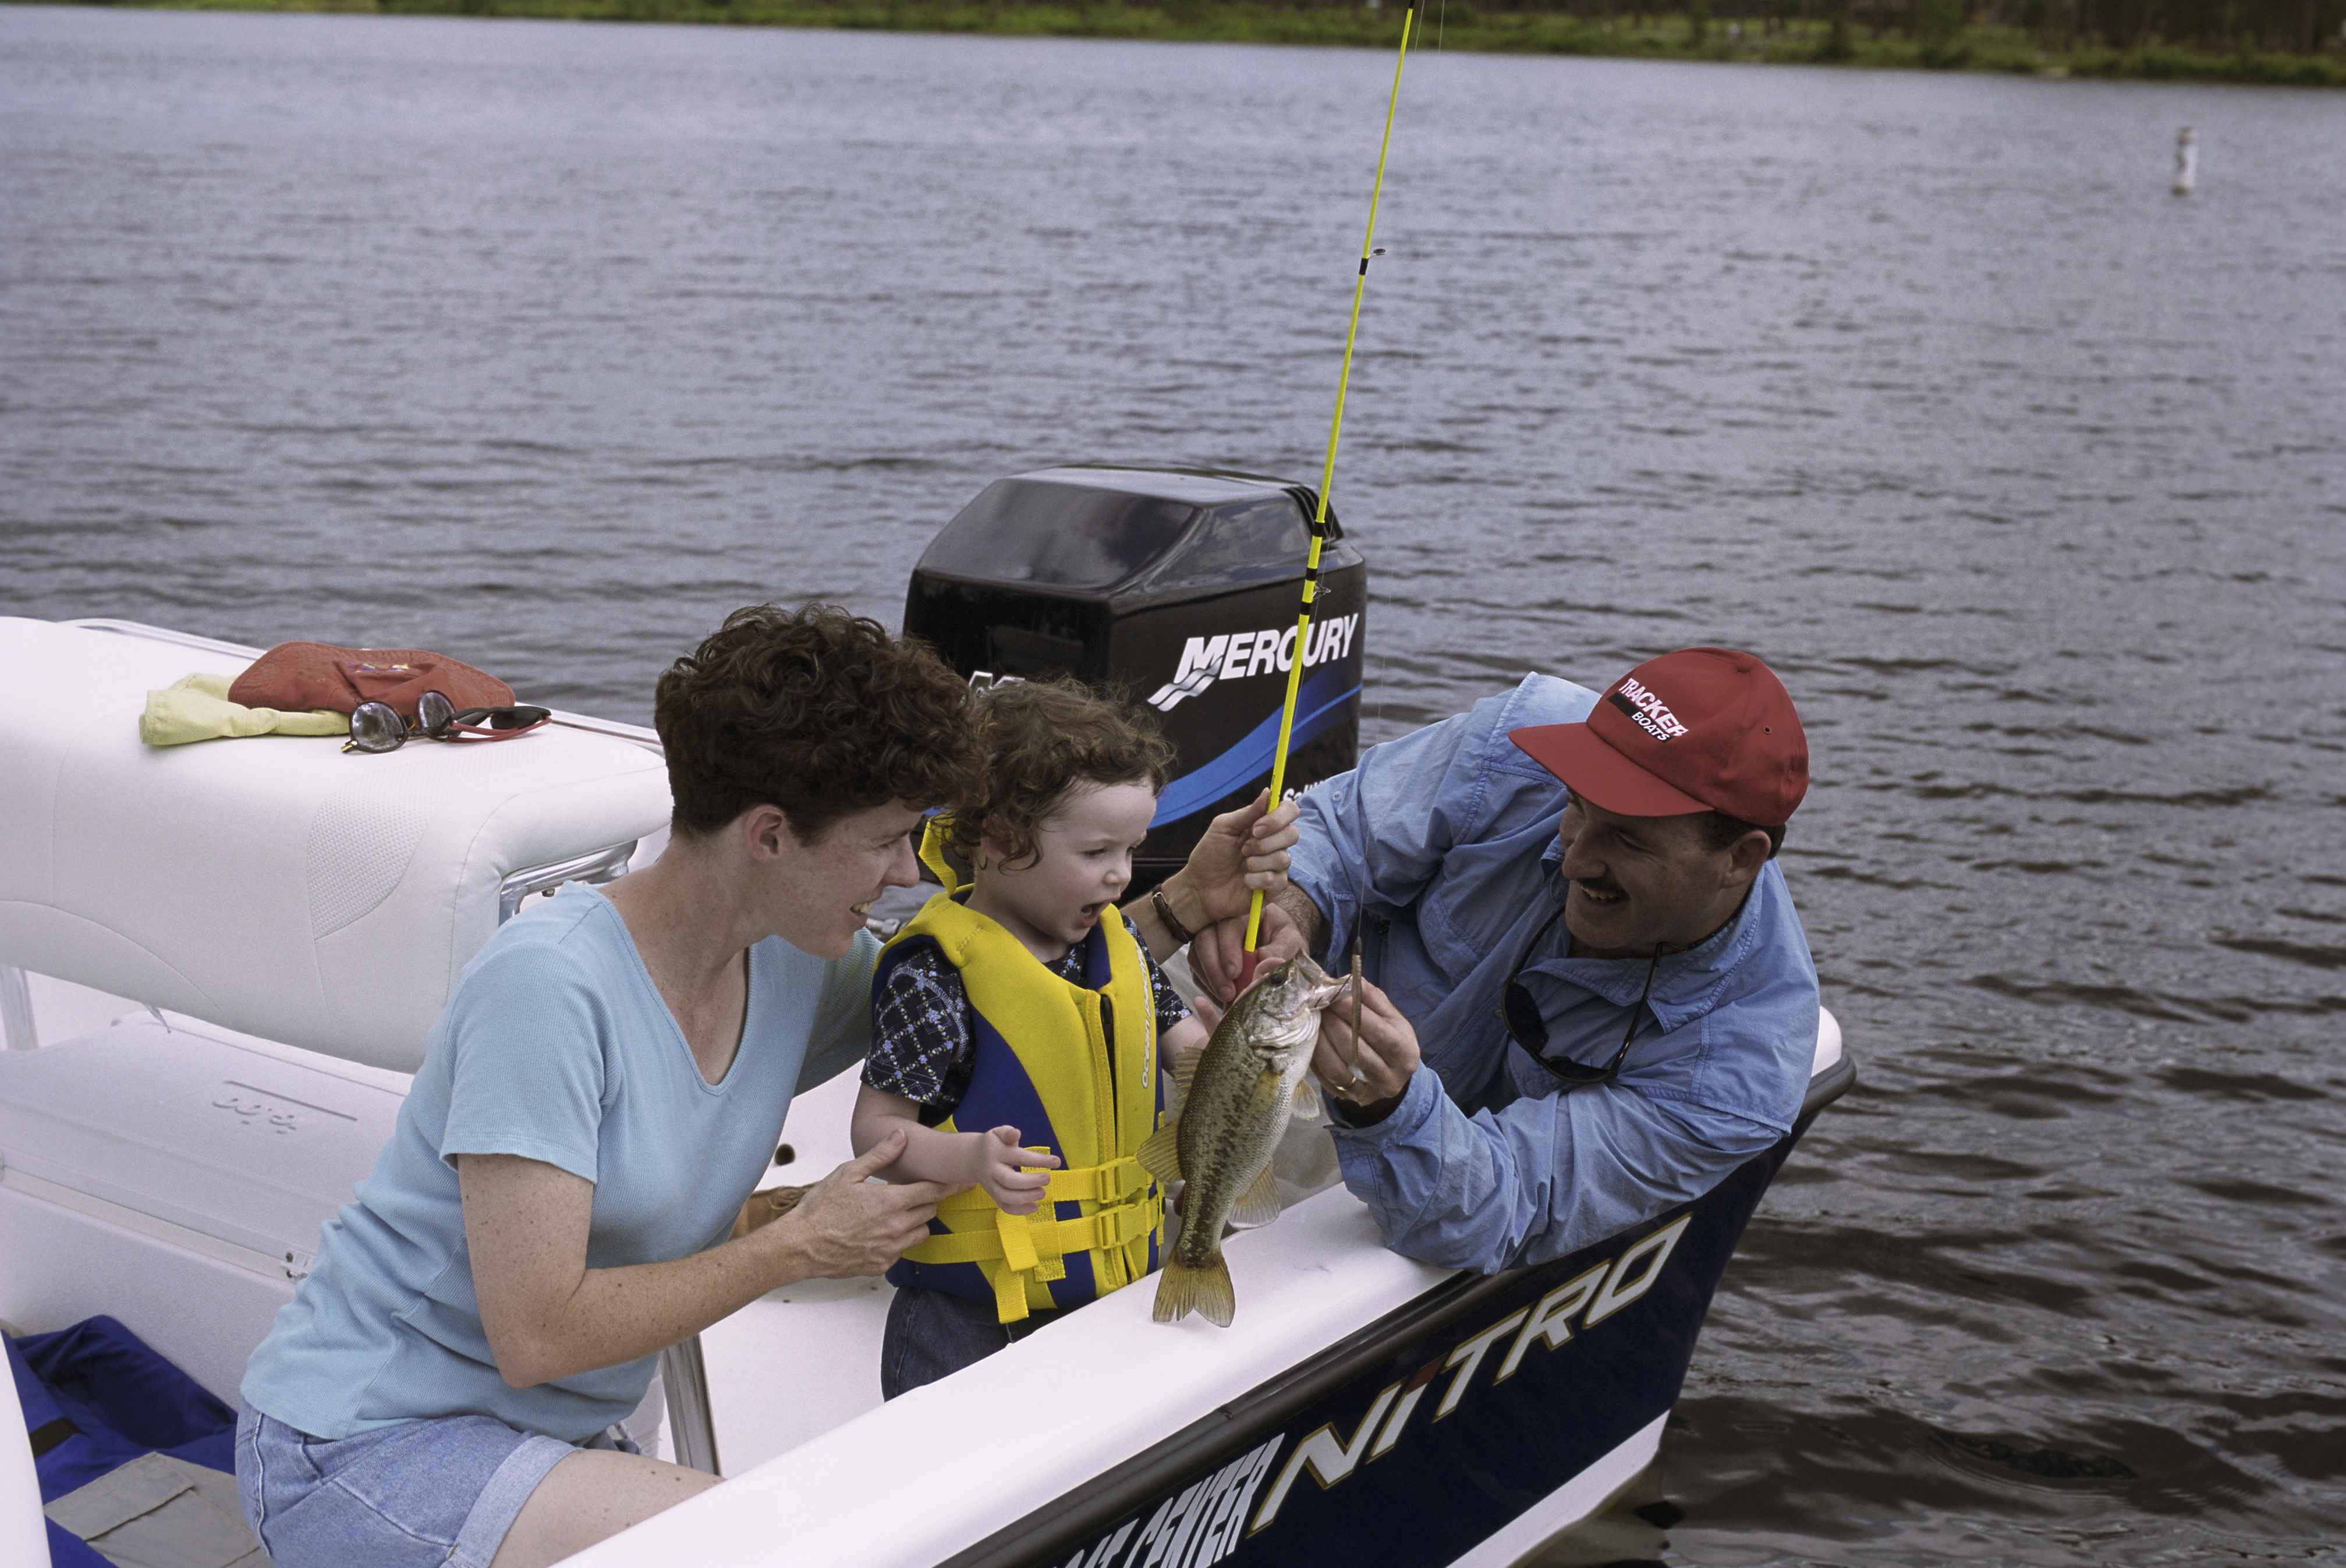 Celebrate national fishing and boating week gtm research for Best boat for fishing and family fun